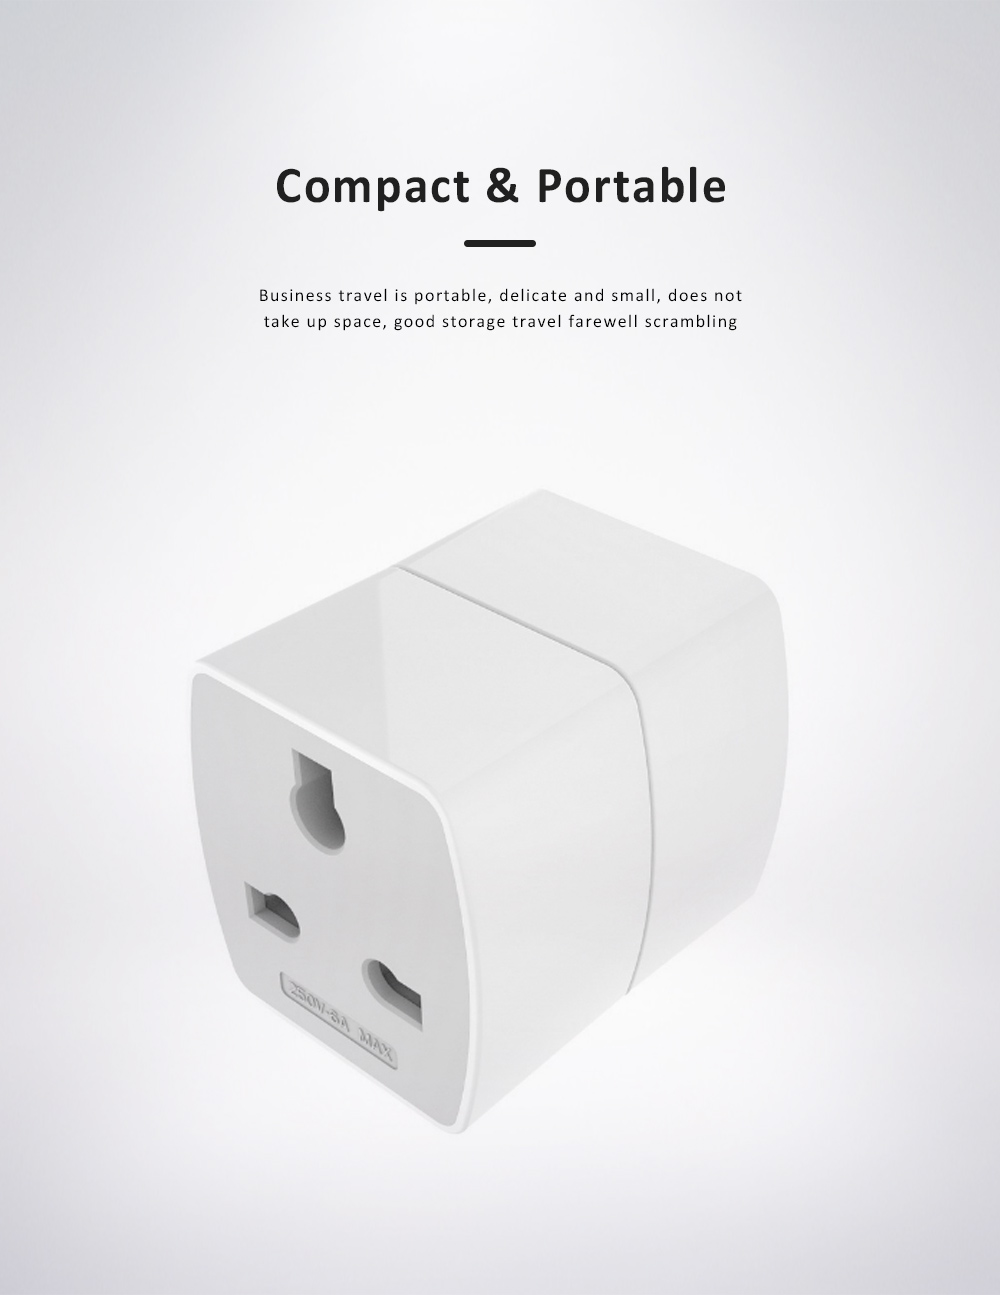 Universal Change-over Plug with Change-over Jack, Small Portable Universal Travel Charging Plug 5